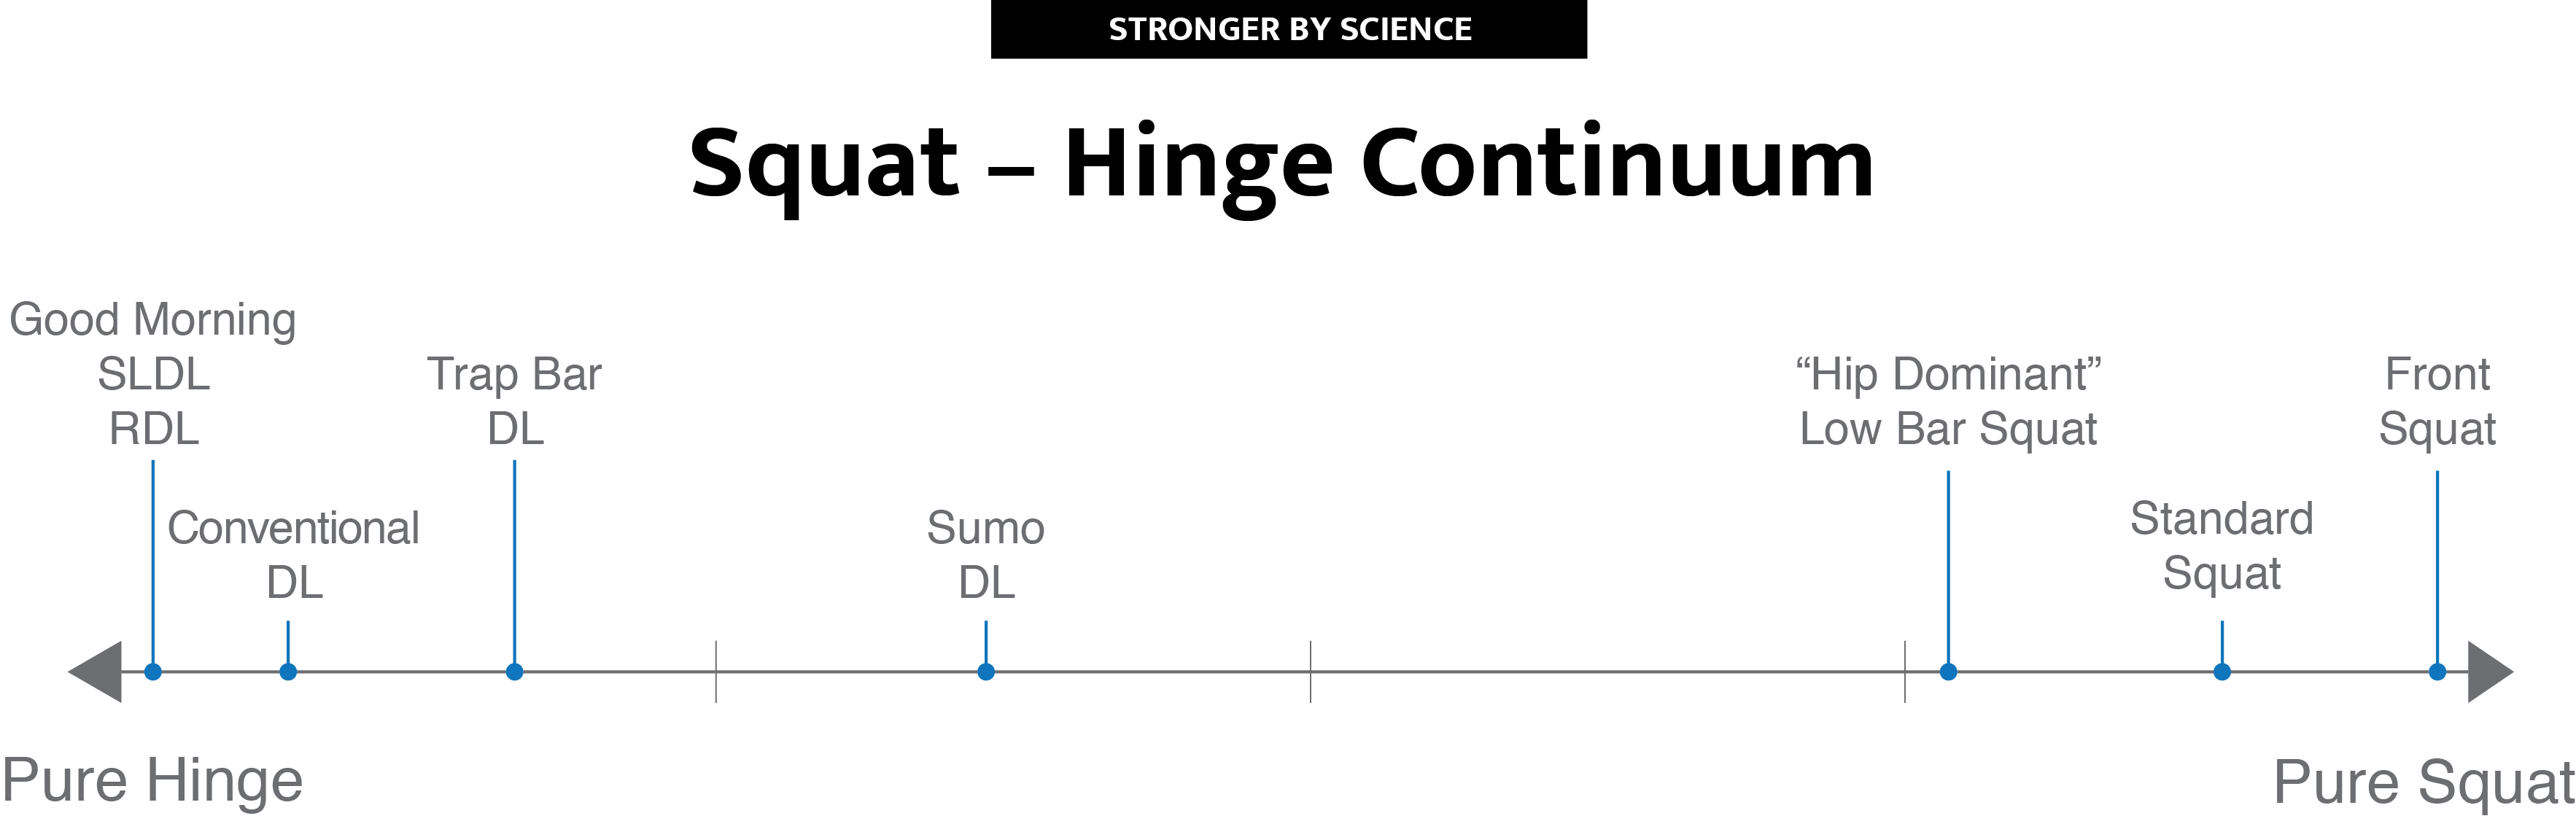 The trap bar deadlift falls closer to pure hinge on the squat-hinge continuum.